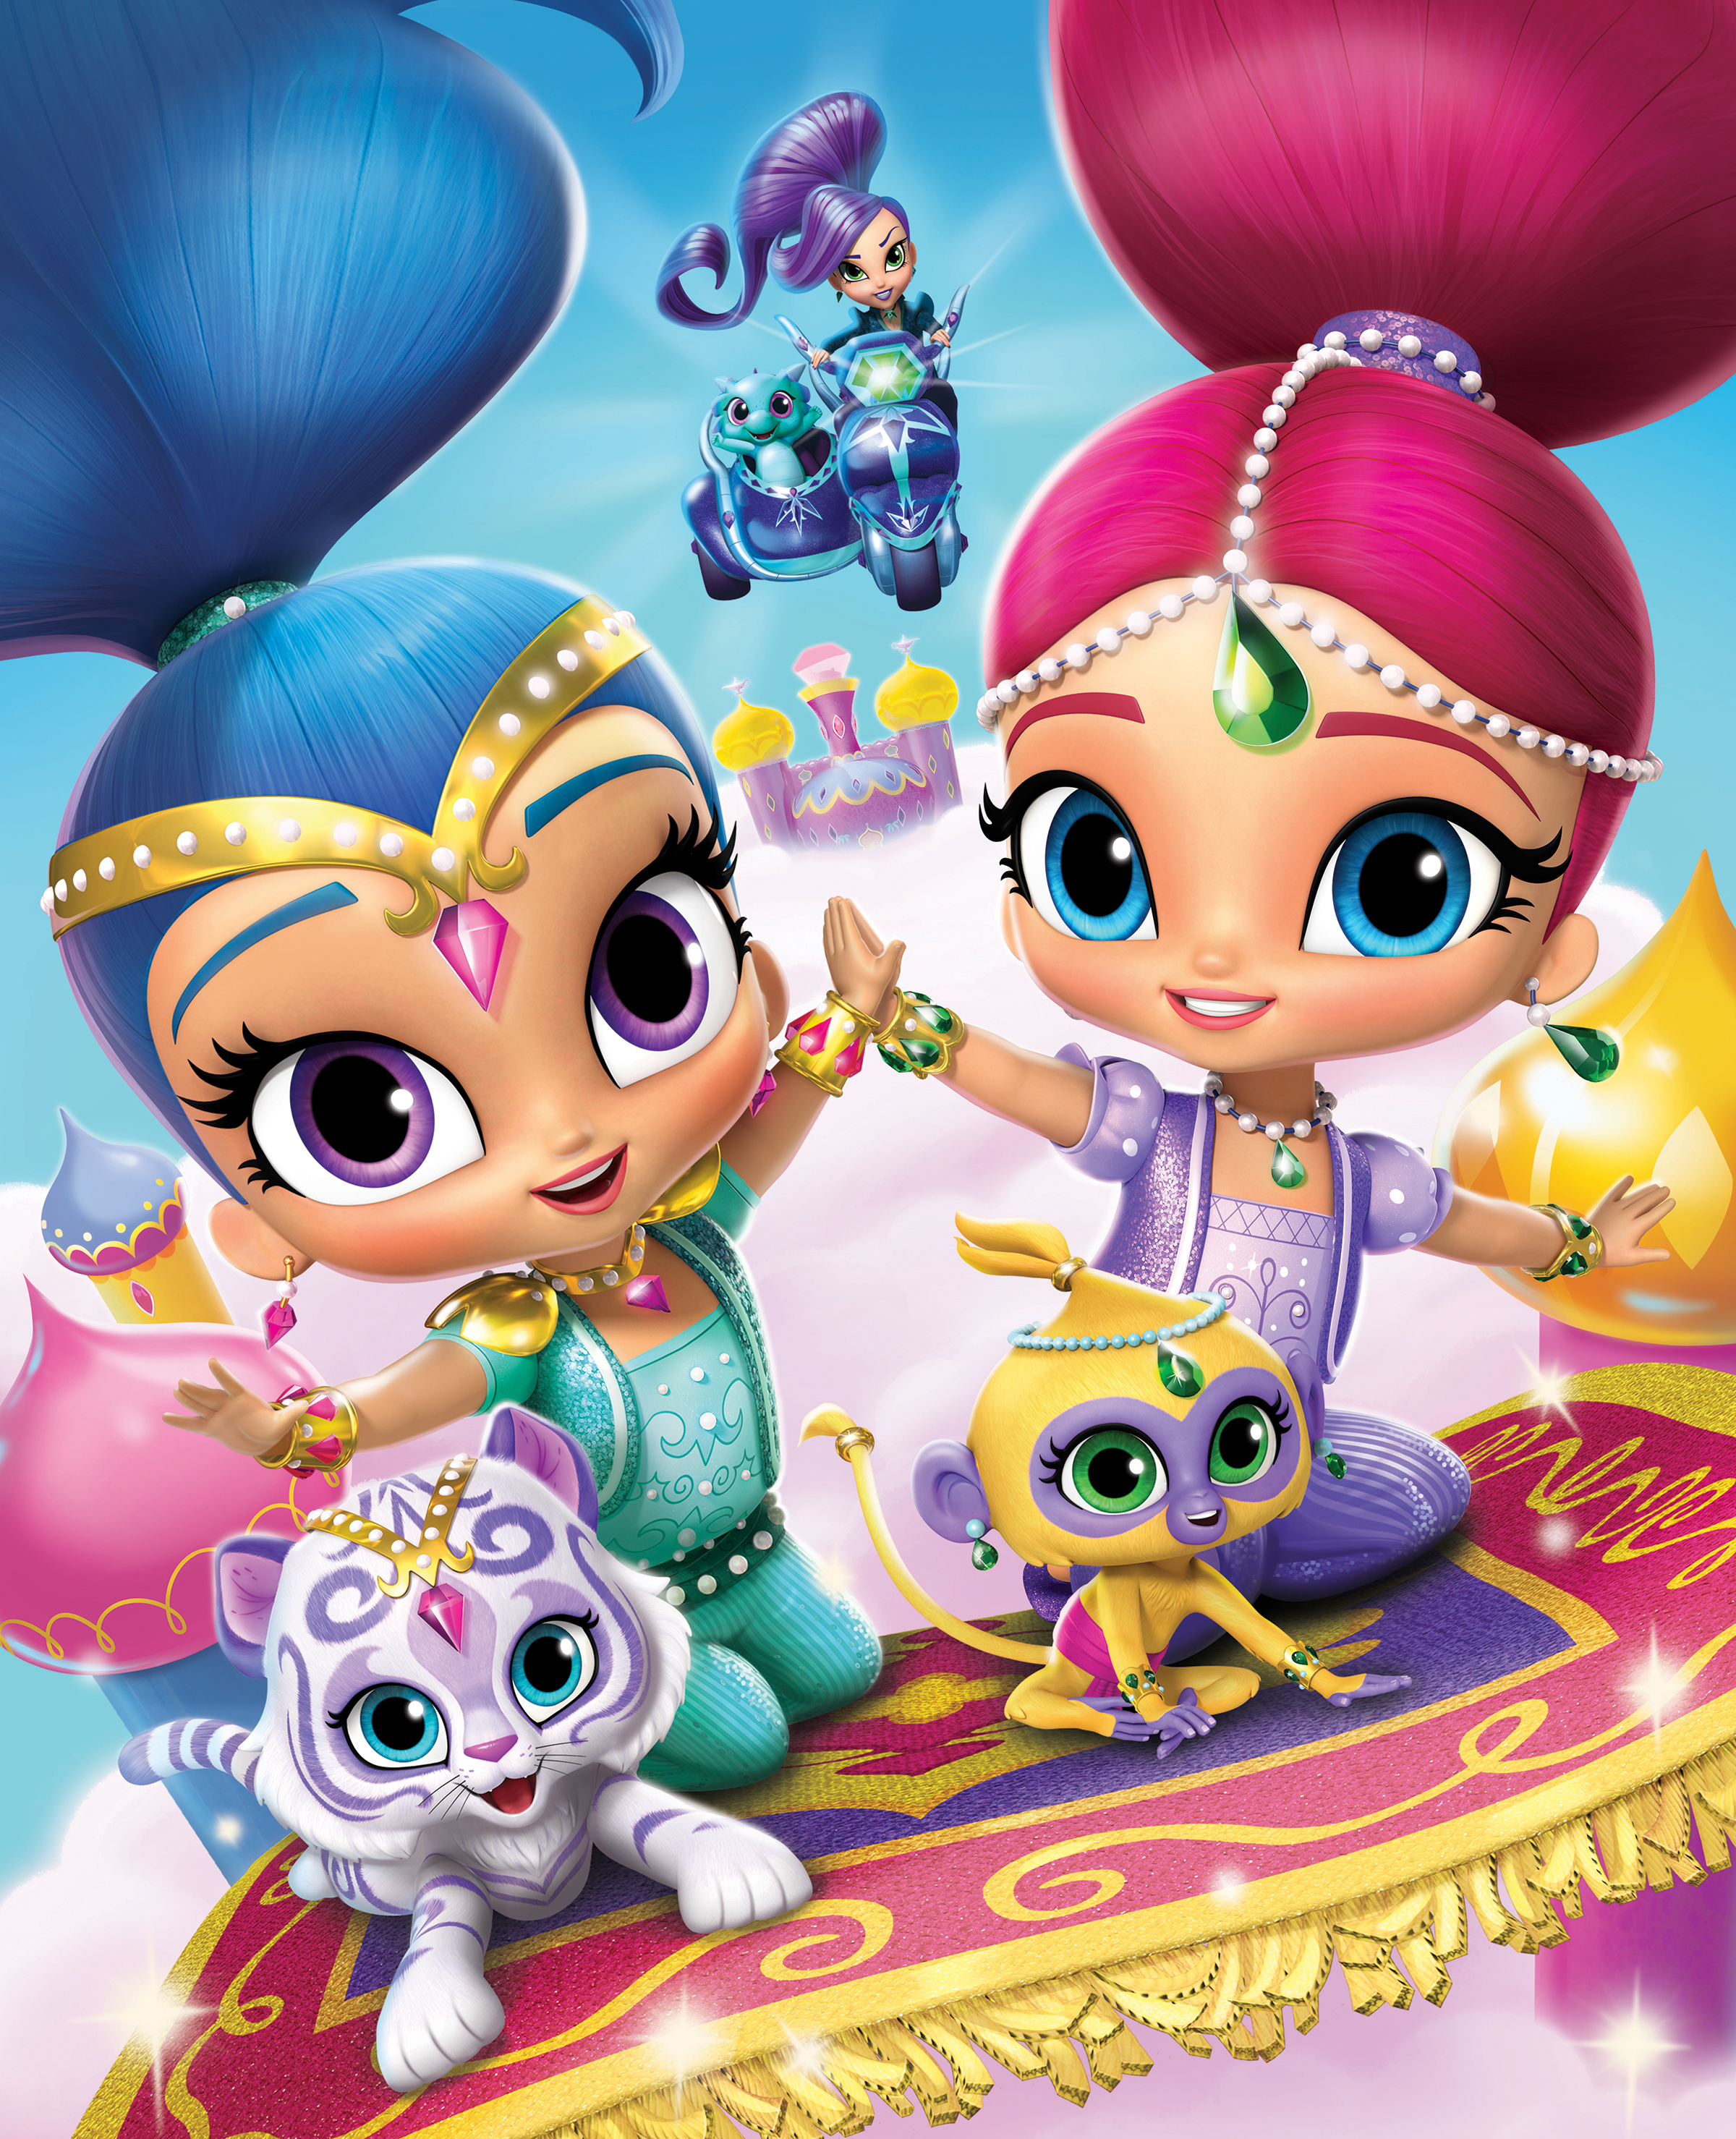 Nickelodeon Grants Preschoolers Wishes With Brand New Shimmer And